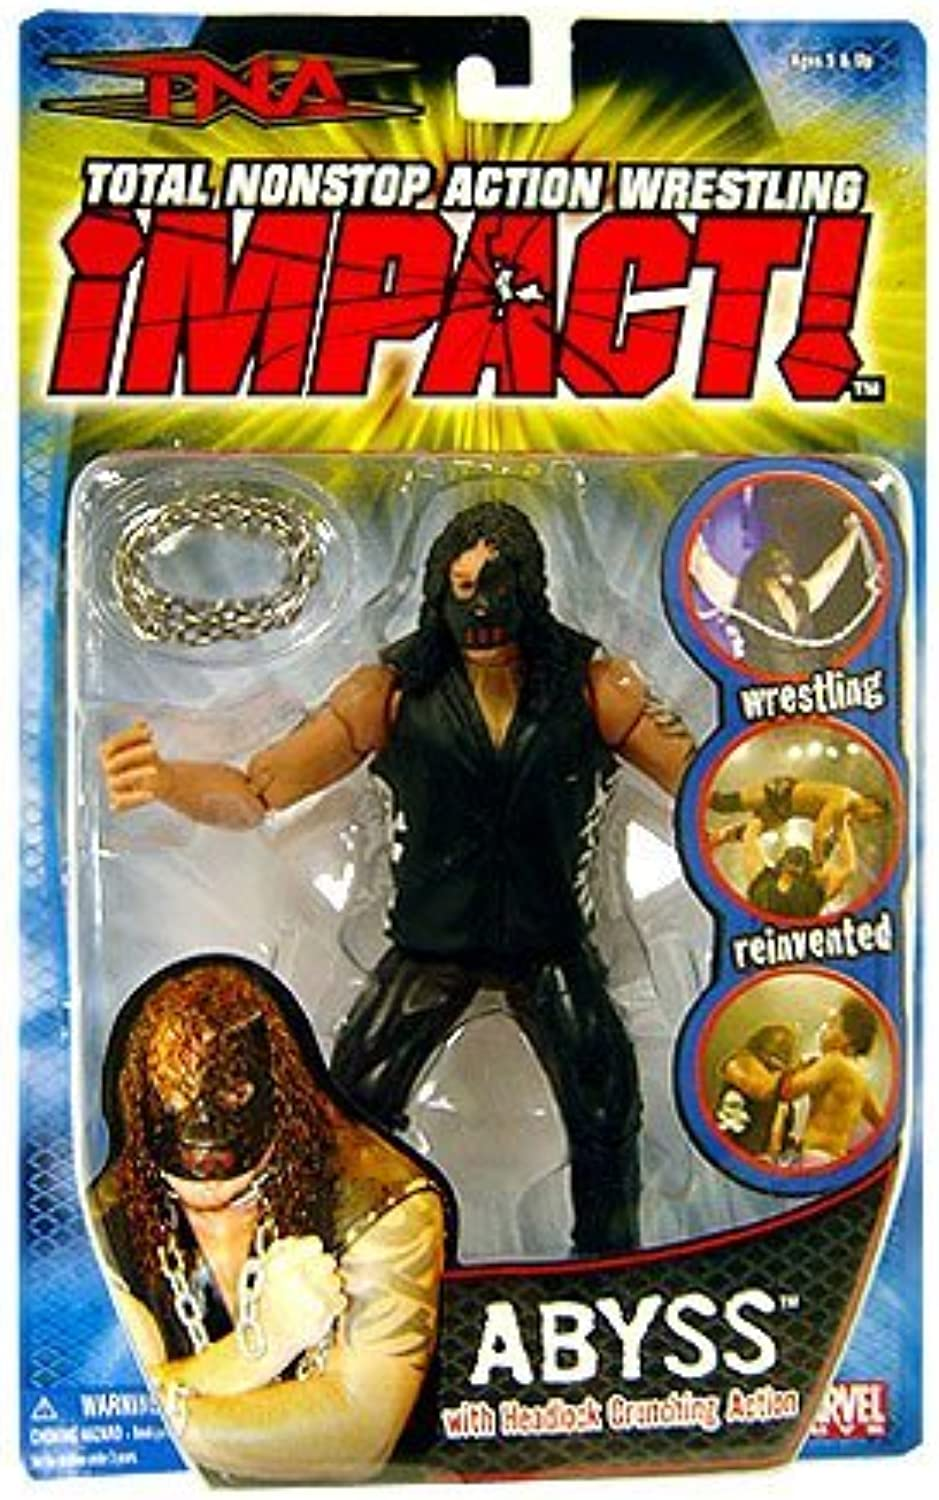 TNA Wrestling Series 1 Action Figure The Abyss by TNA